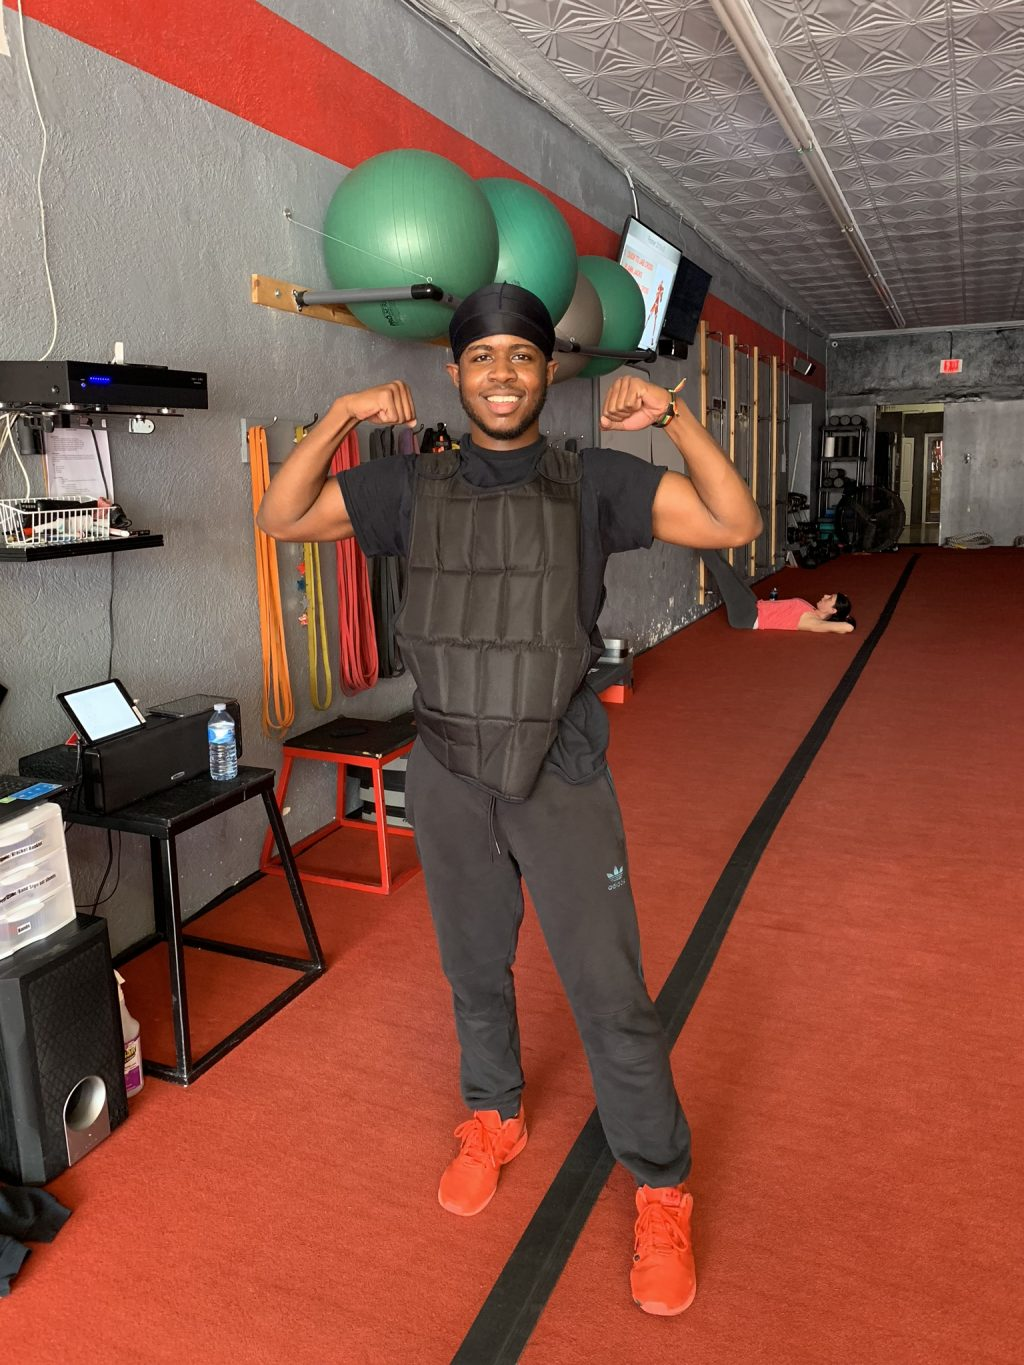 Personal Trainer Chicago, Illinois - Daeshon Little